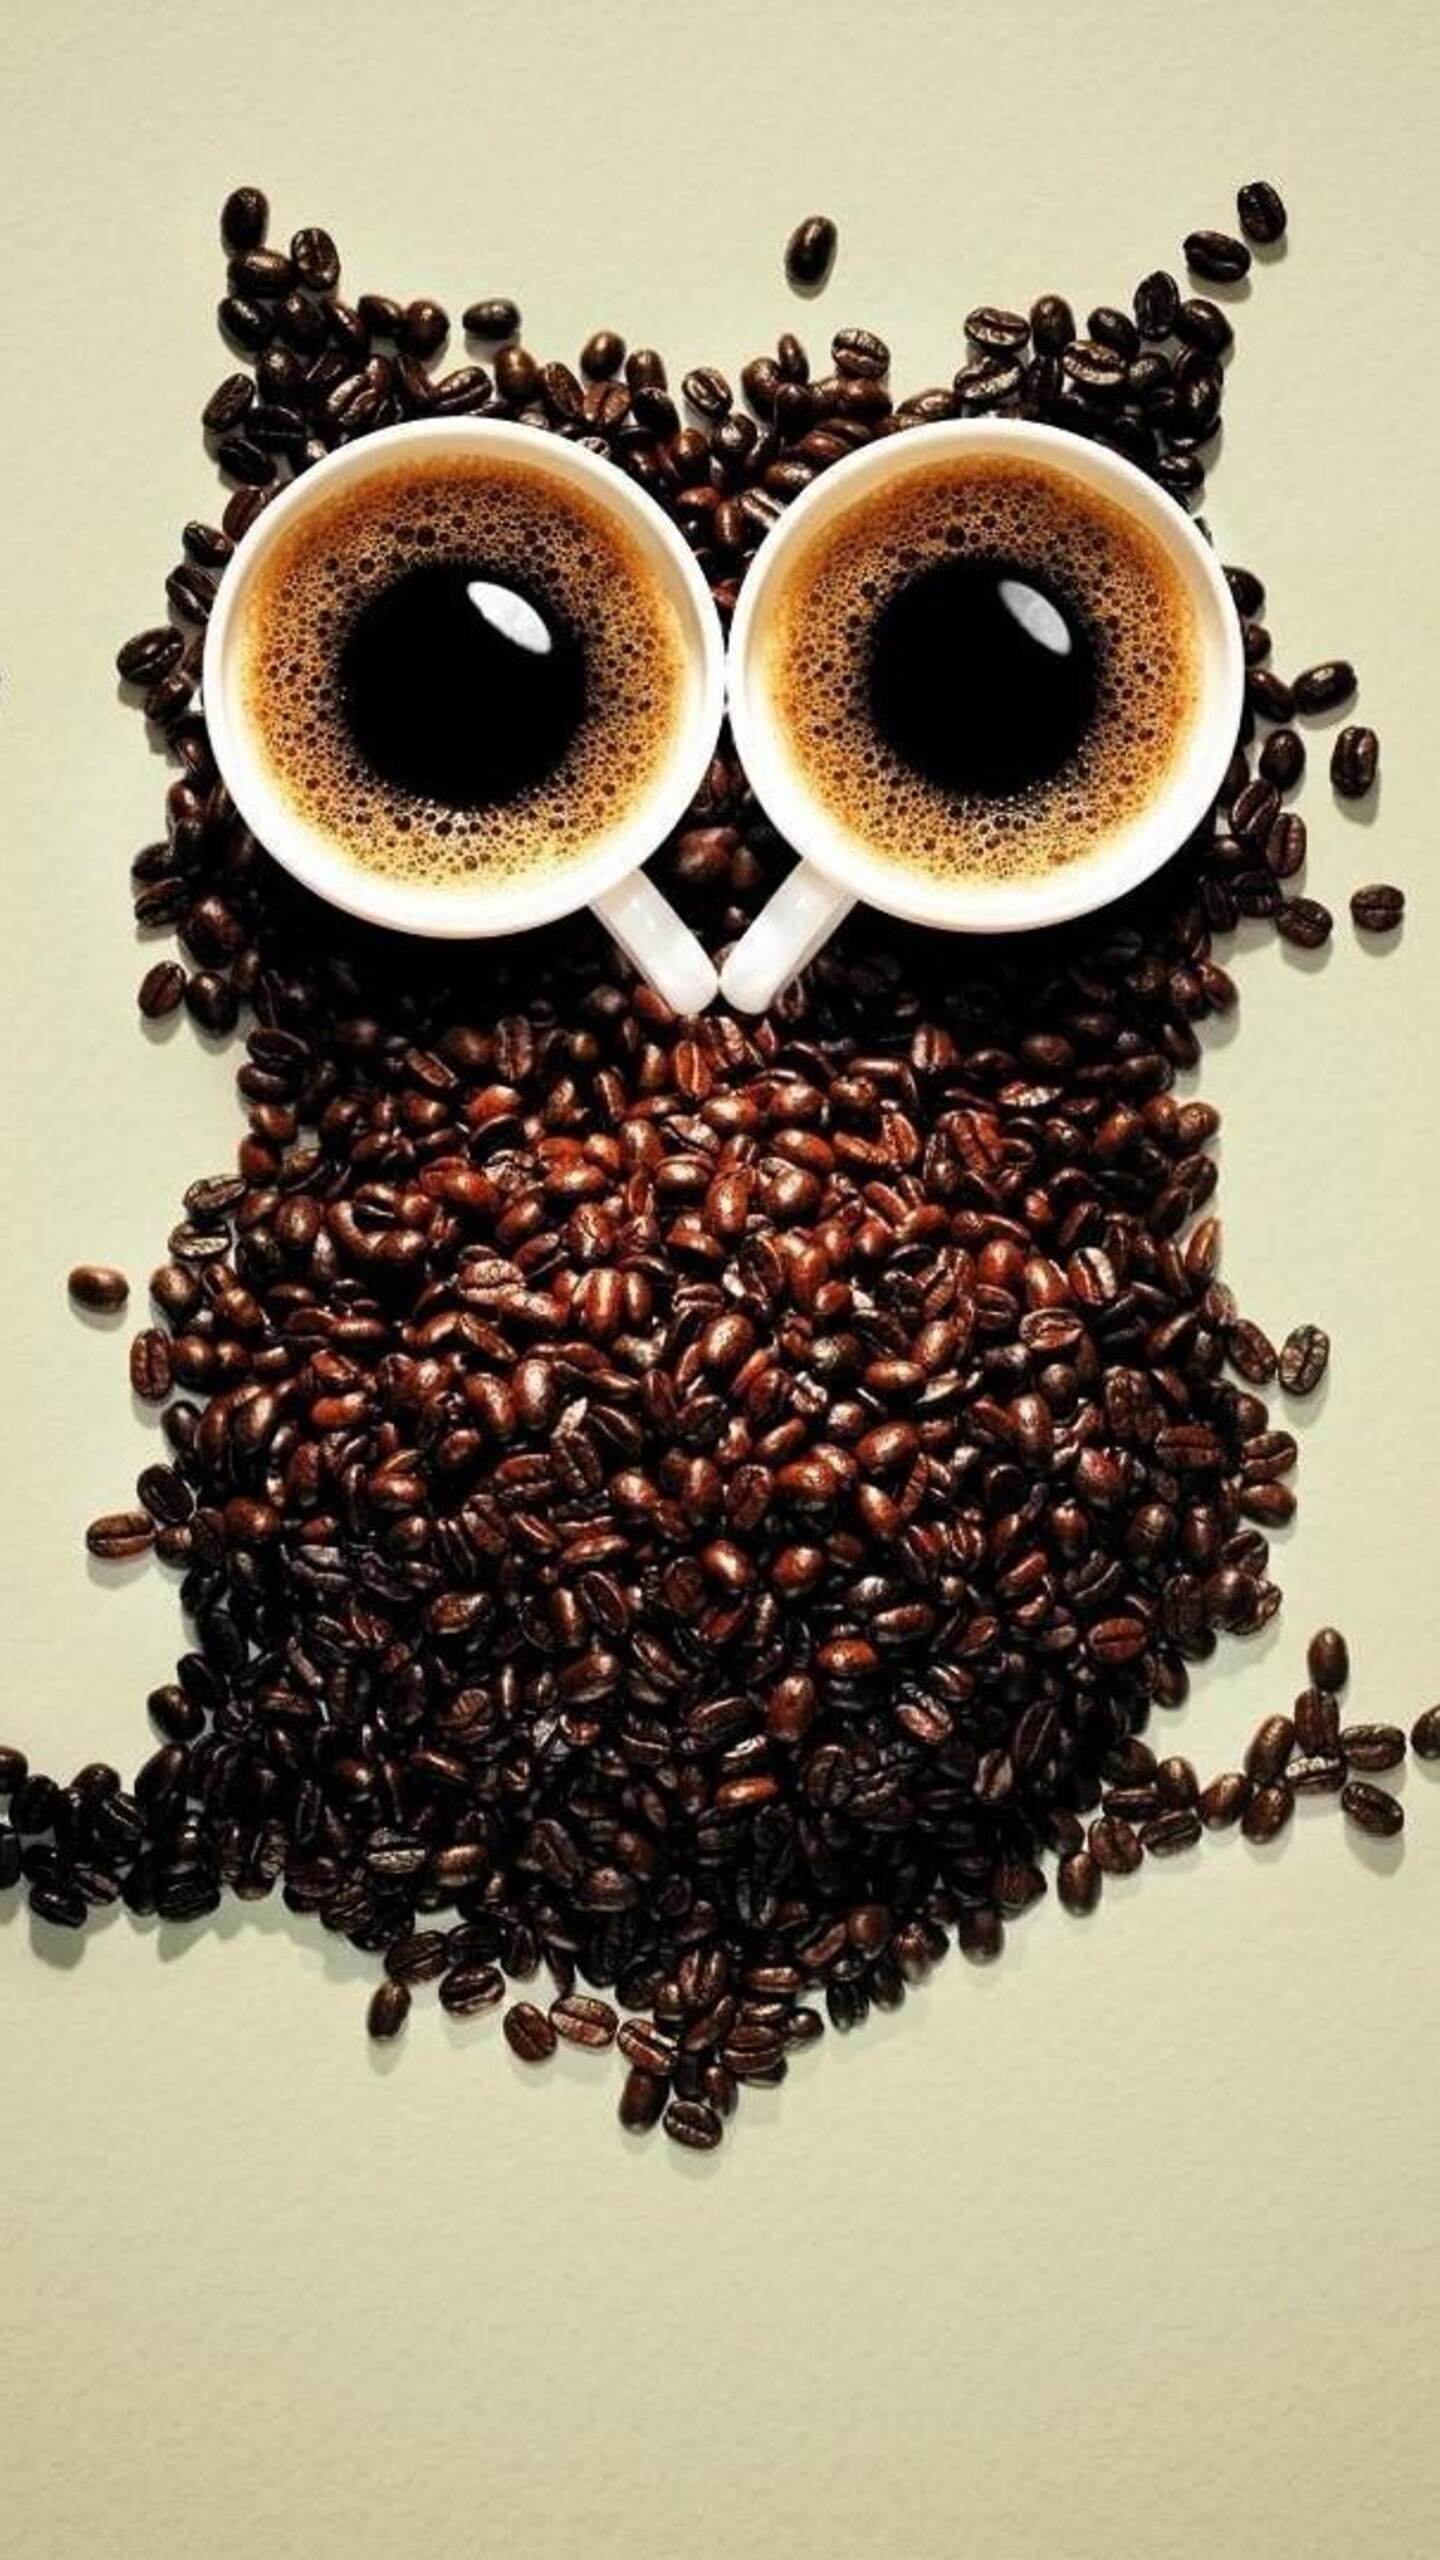 1440x2560 Coffee Beans Owl Art Samsung Galaxy S6 S7 Google Pixel Xl Nexus 6 6p Lg G5 Hd 4k Wallpapers Images Backgrounds Photos And Pictures